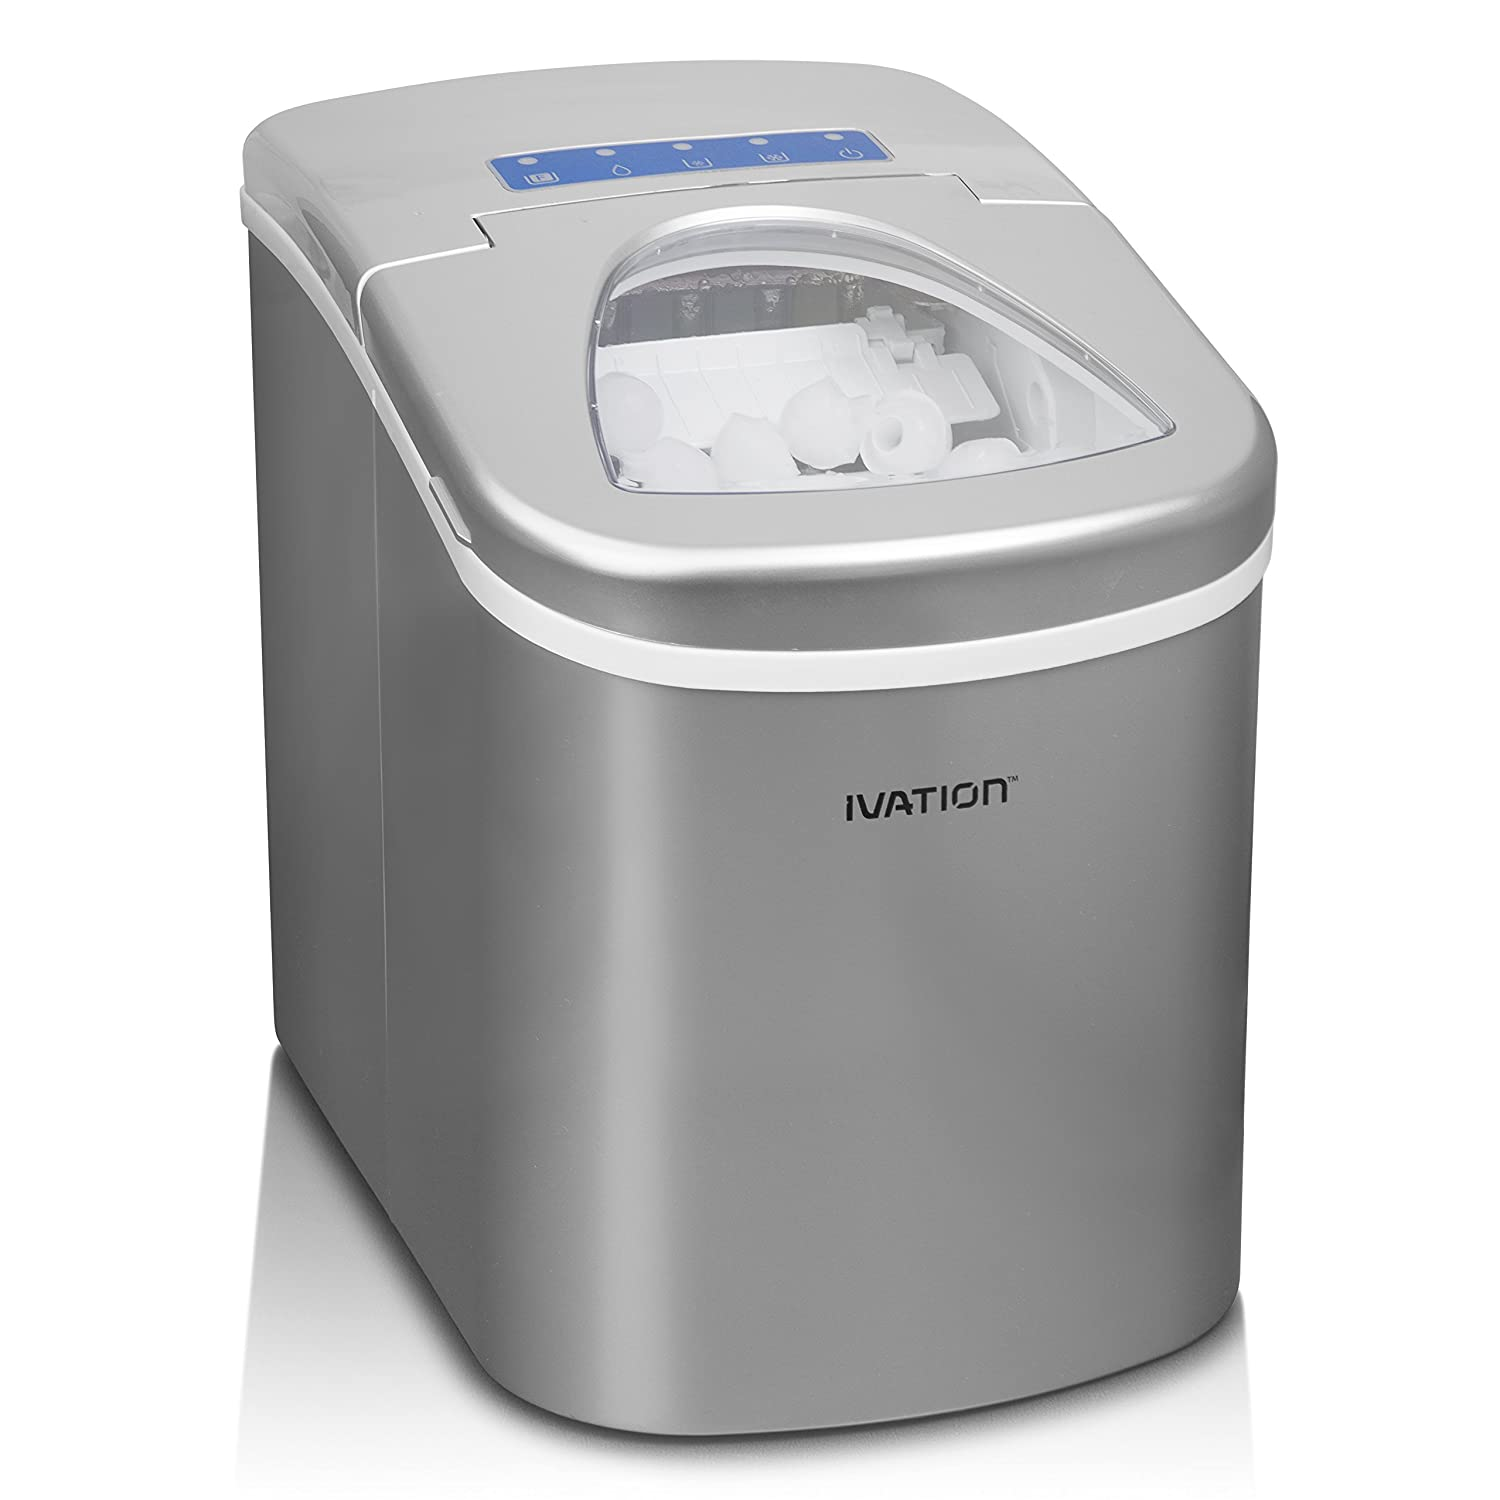 Ivation Portable High Capacity Household Icemaker w/Easy-Touch Buttons for Digital Operation-Features 2.5-Quart Water Reservoir - 2 Selectable Cube Sizes -Yield of up to 26.5 Pounds of Ice Daily